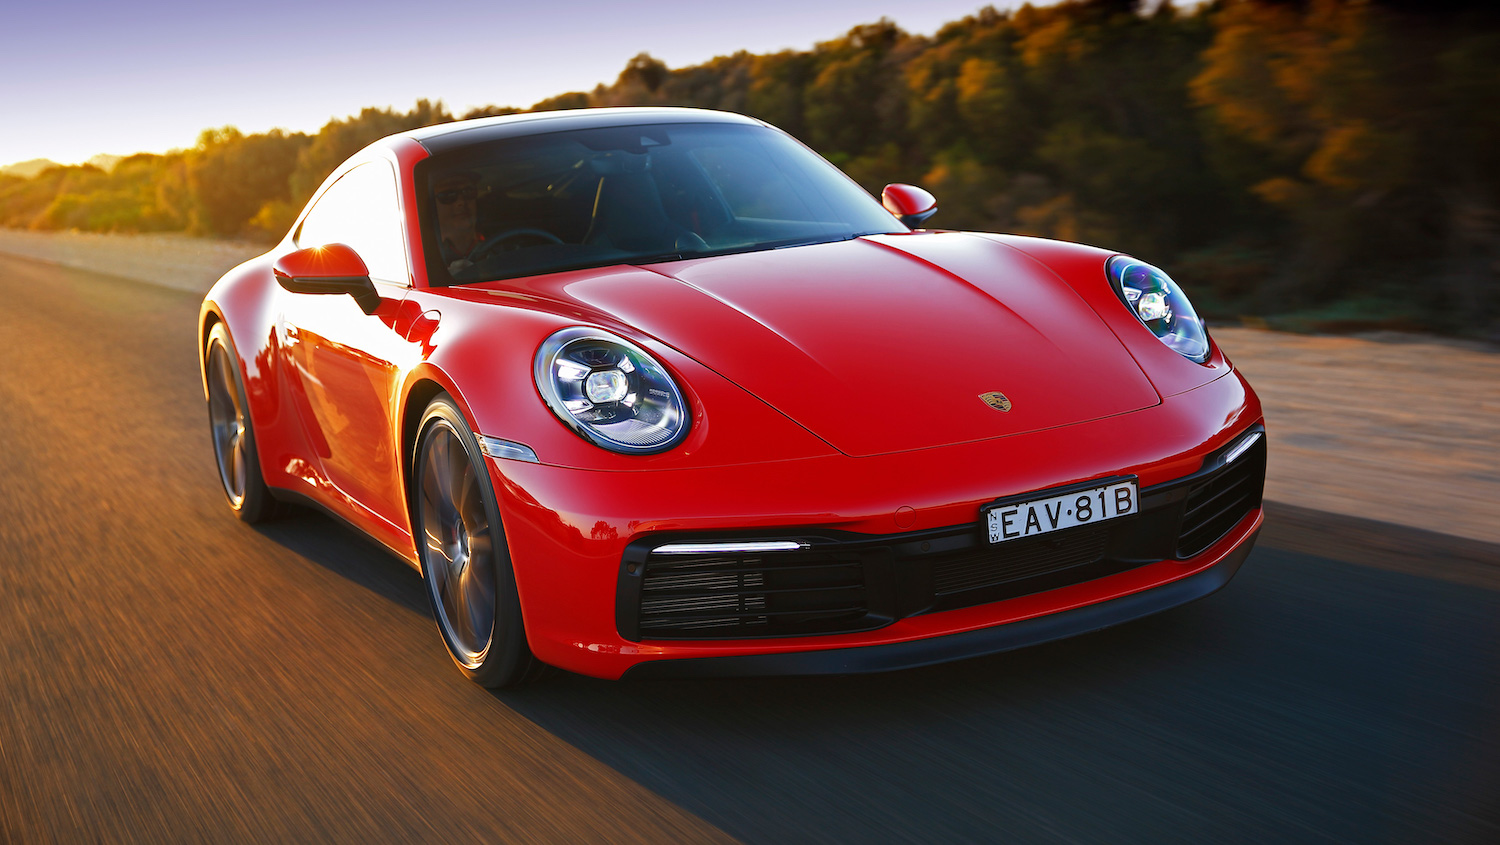 2019 red porsche 911 carrera s front three-quarter